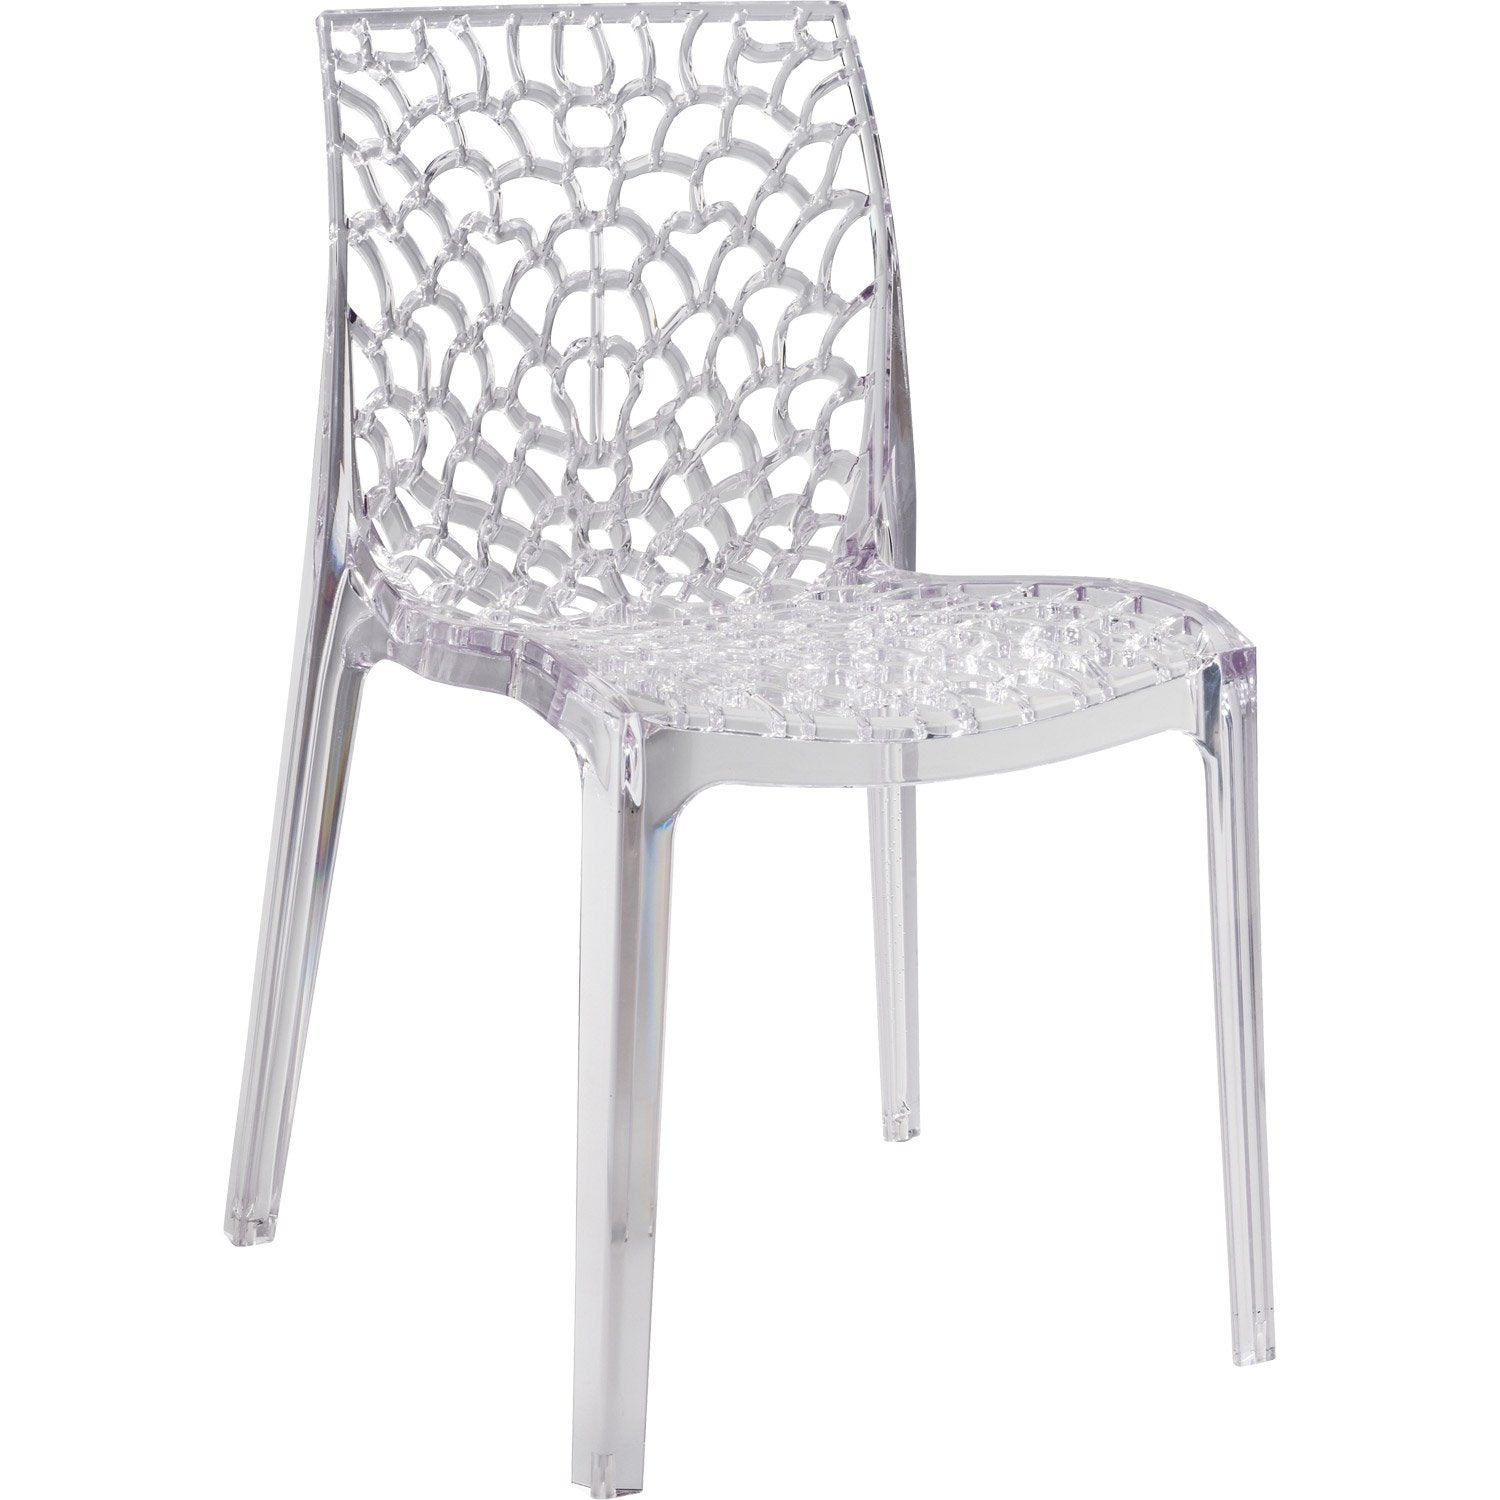 Chaise de jardin en polycarbonate grafik lux transparent for Chaise de jardin blanche